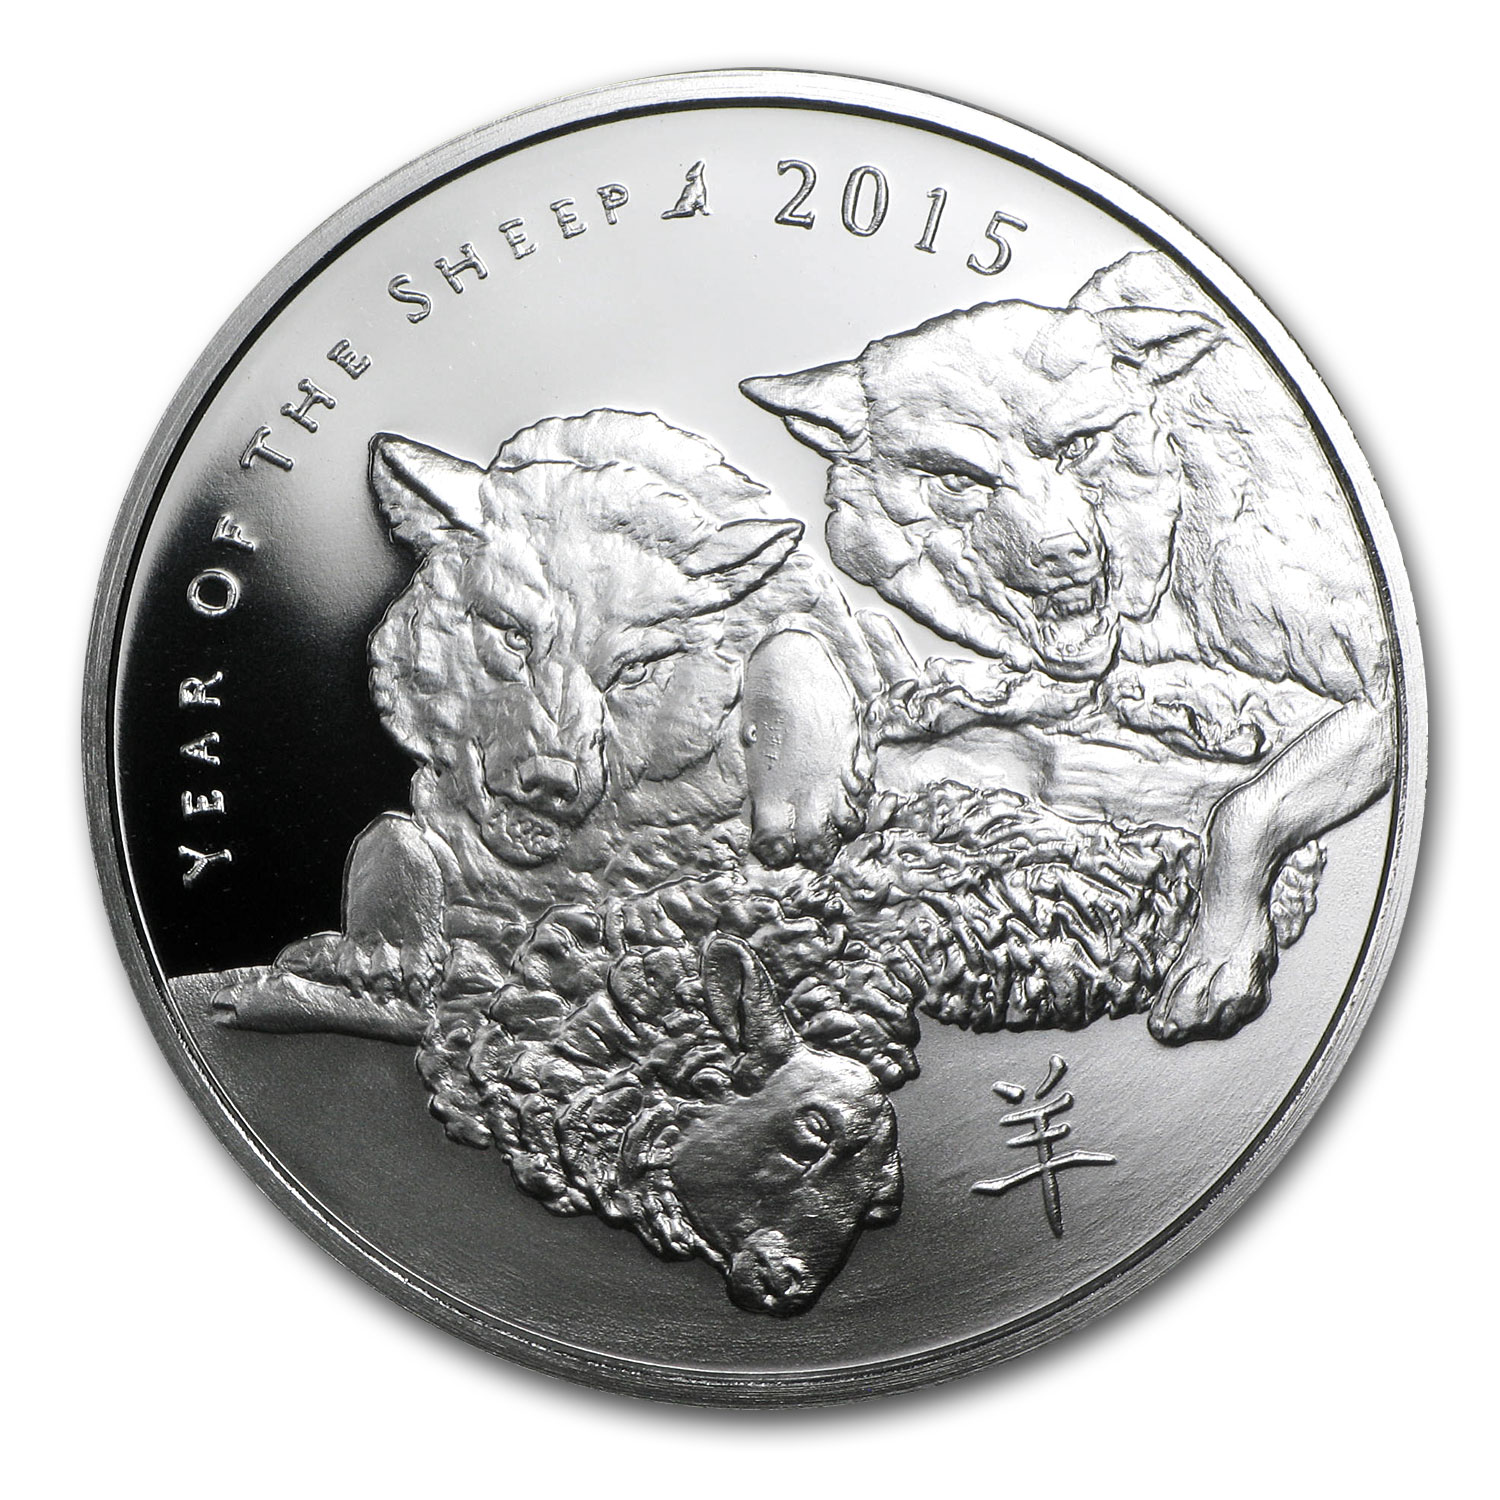 2015 1 oz Silver Proof Round - Year of the Sheep (w/Box & COA)